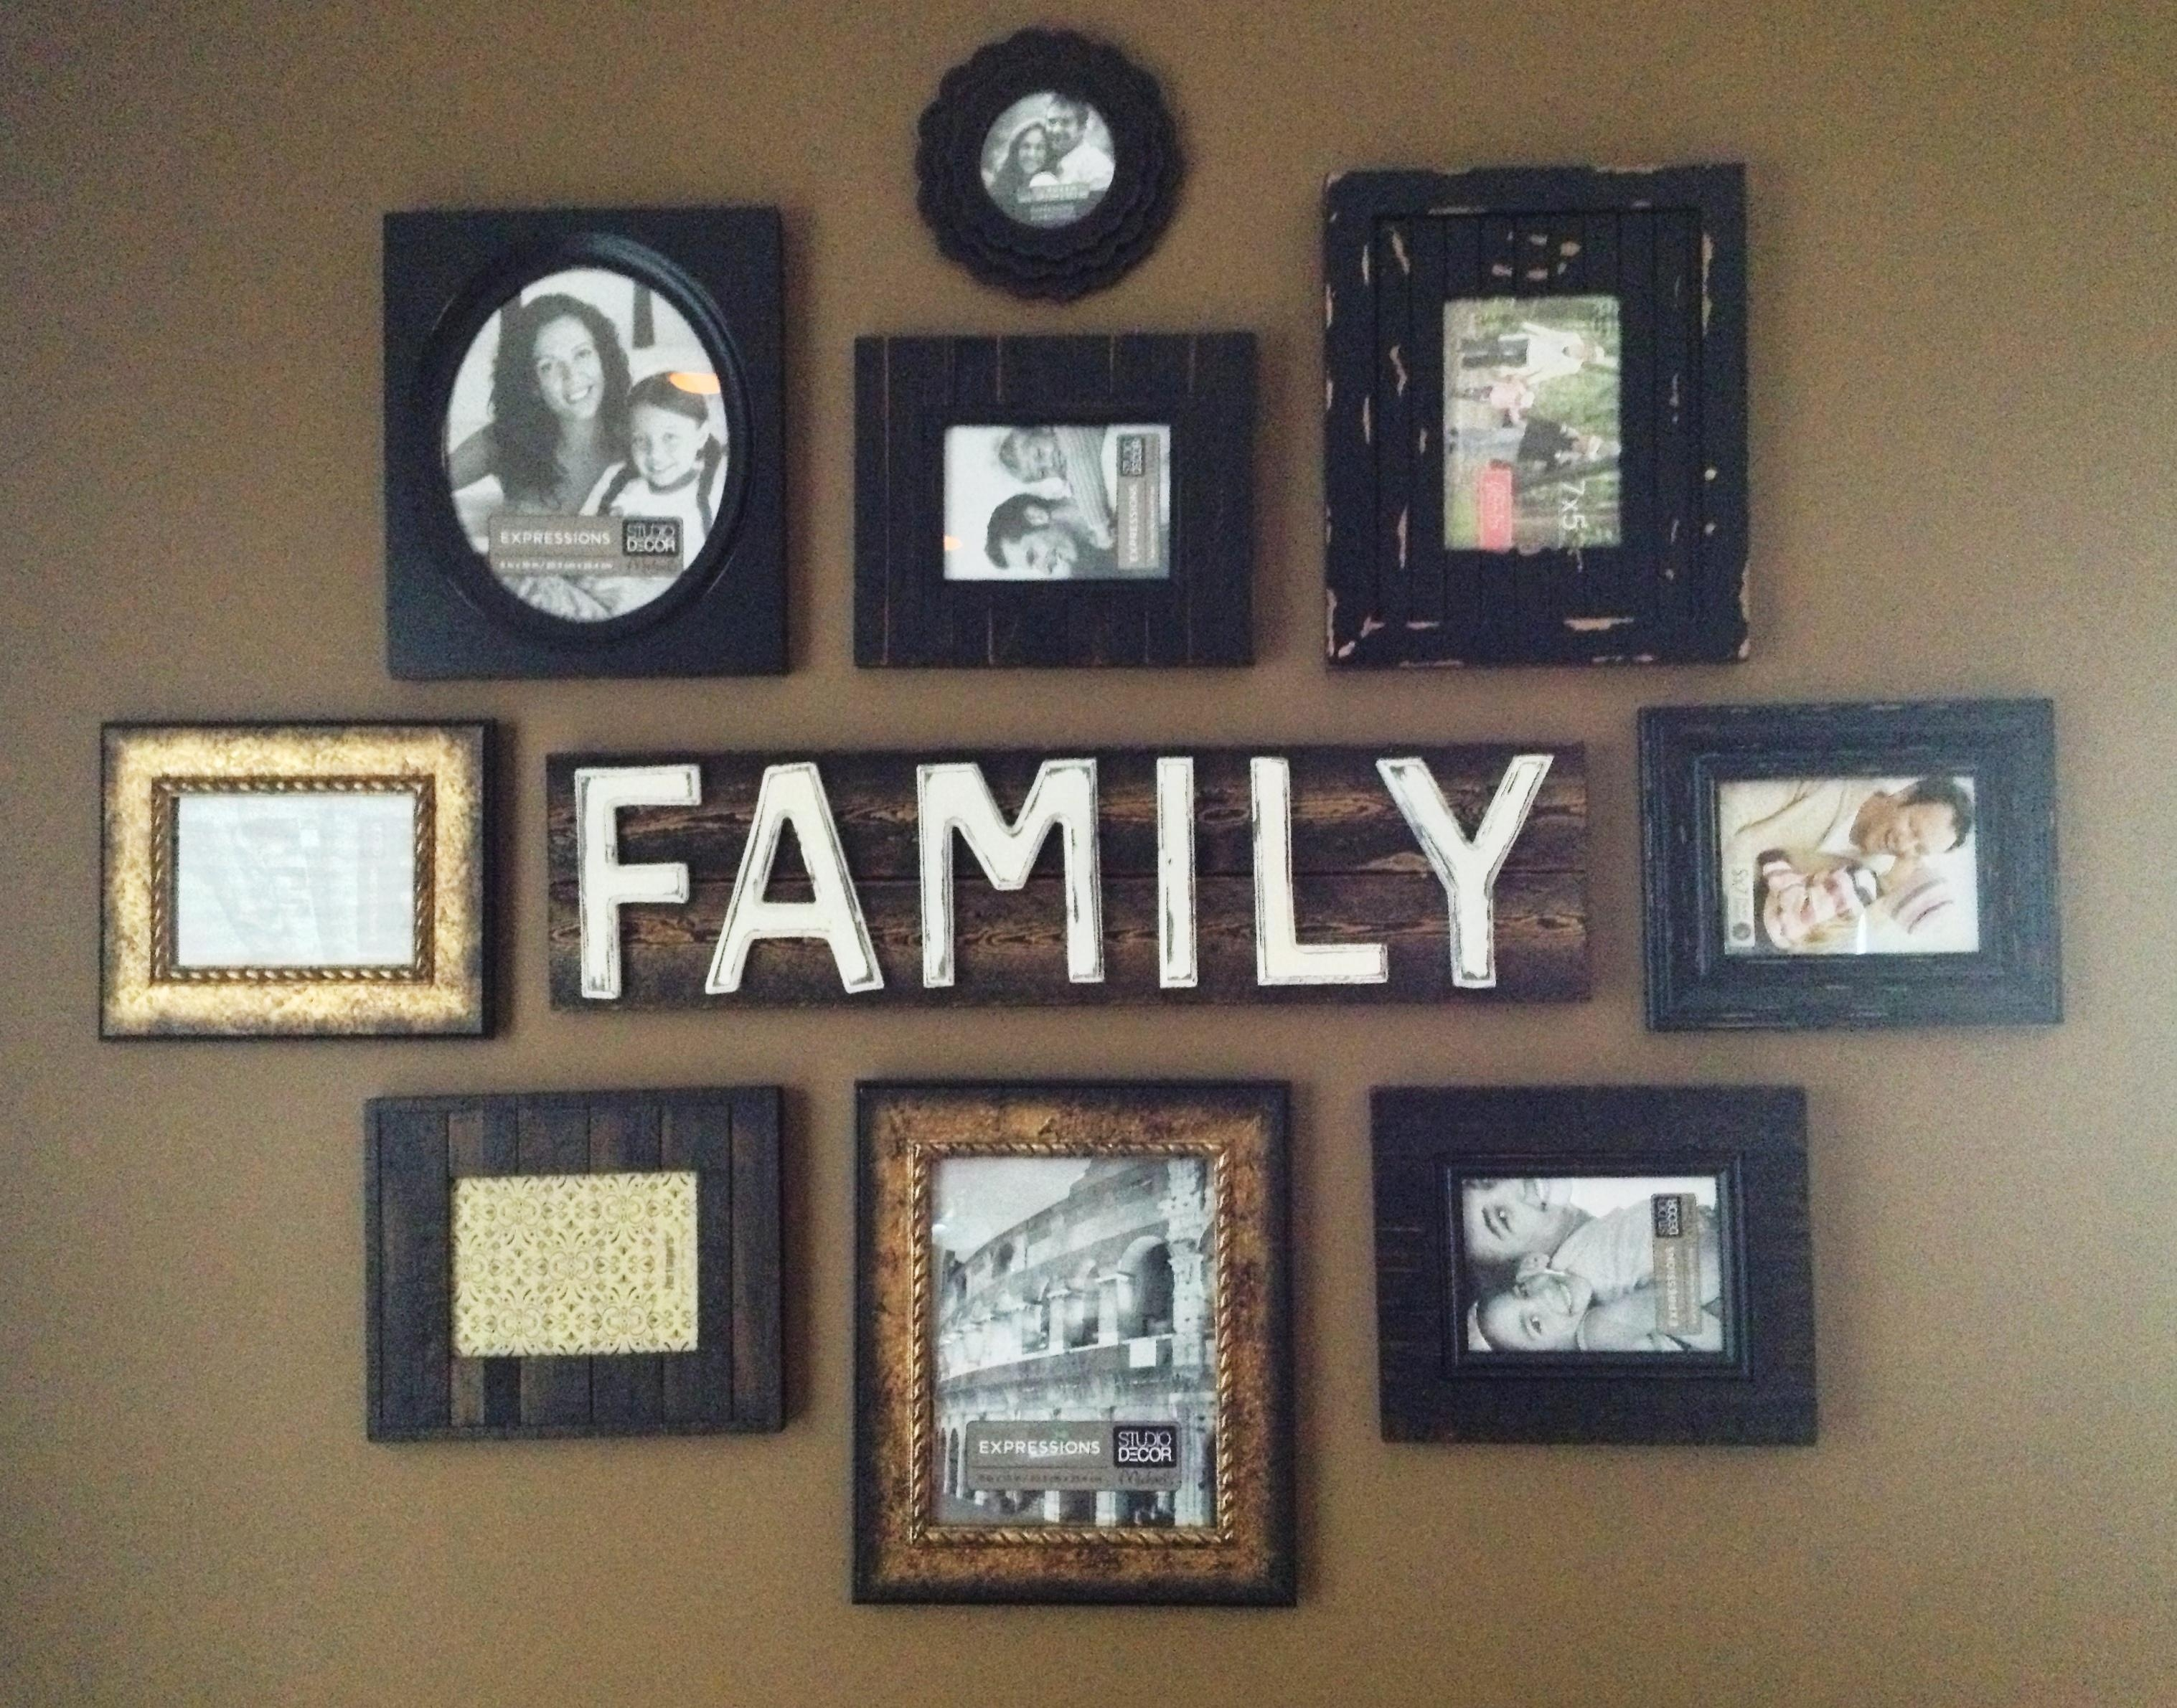 Family Wall Art Picture Frames | Wallartideas Intended For Family Wall Art Picture Frames (Image 10 of 20)